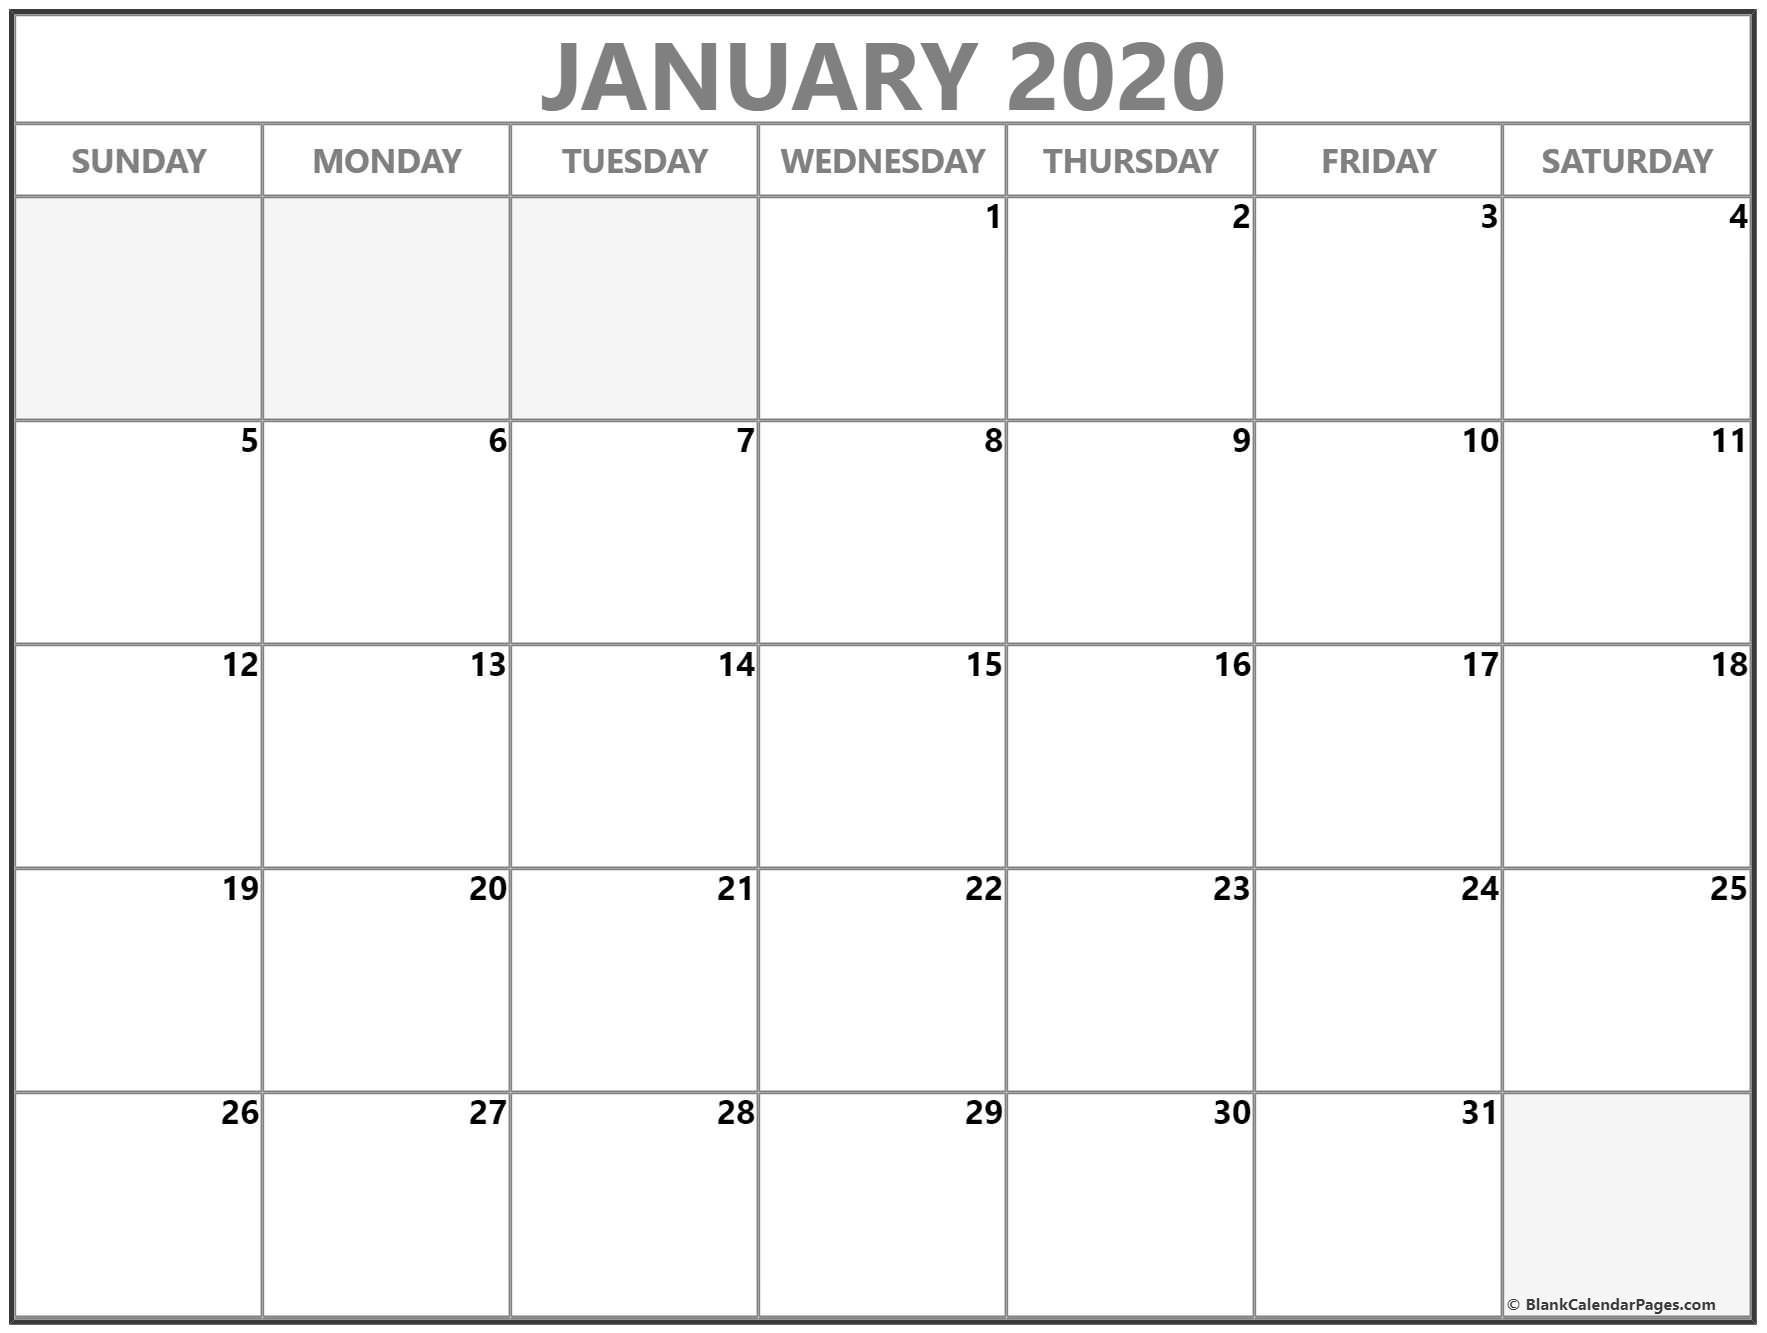 Remarkable Free Printable Calendars Without Weekends-Free Blank No Date Printable Calendar 2021